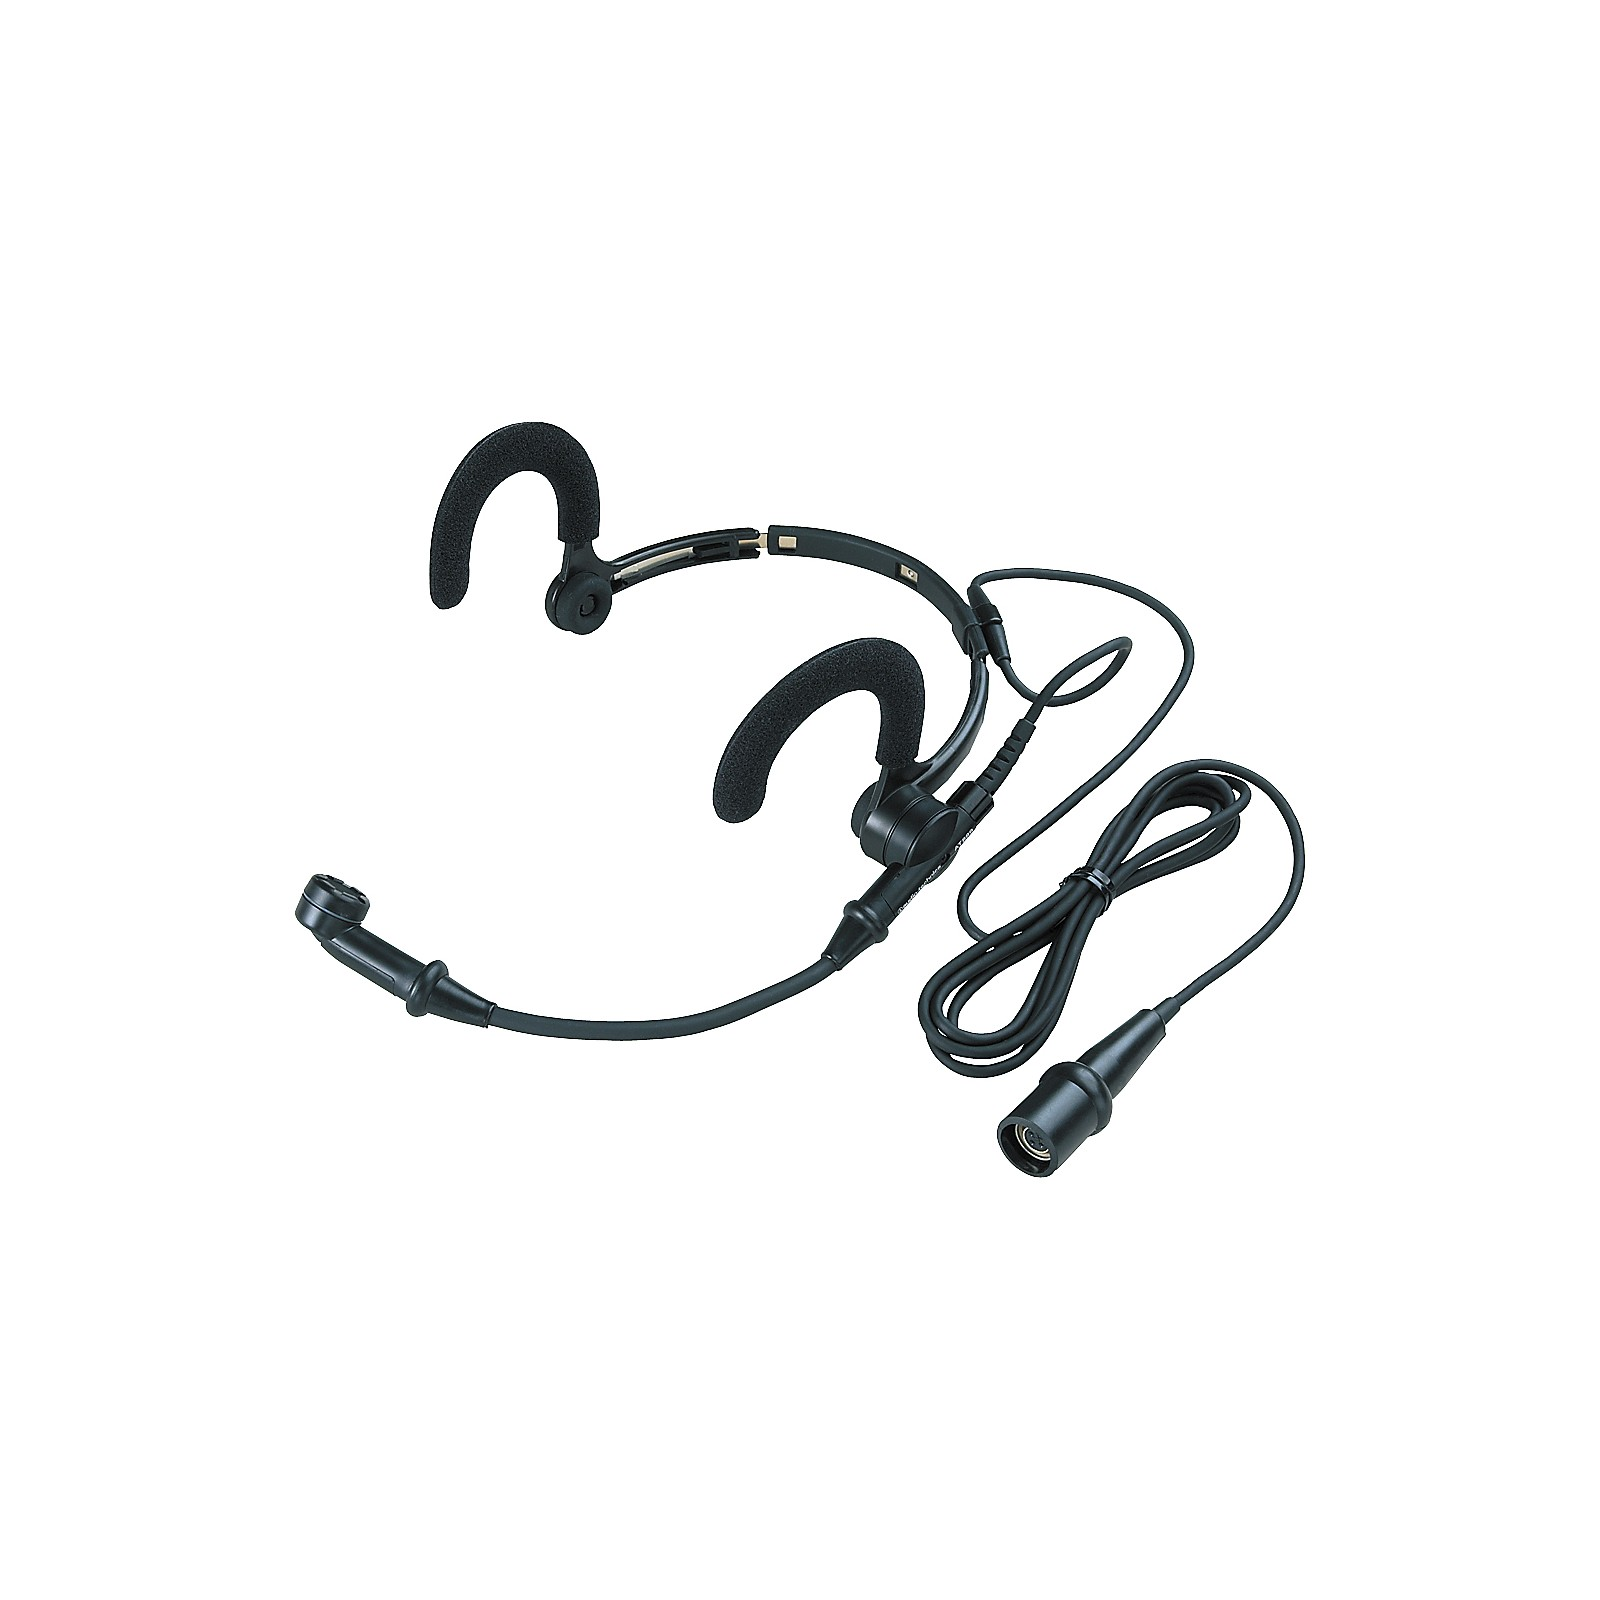 Audio-Technica AT889 Moisture Resistant Headset Microphone